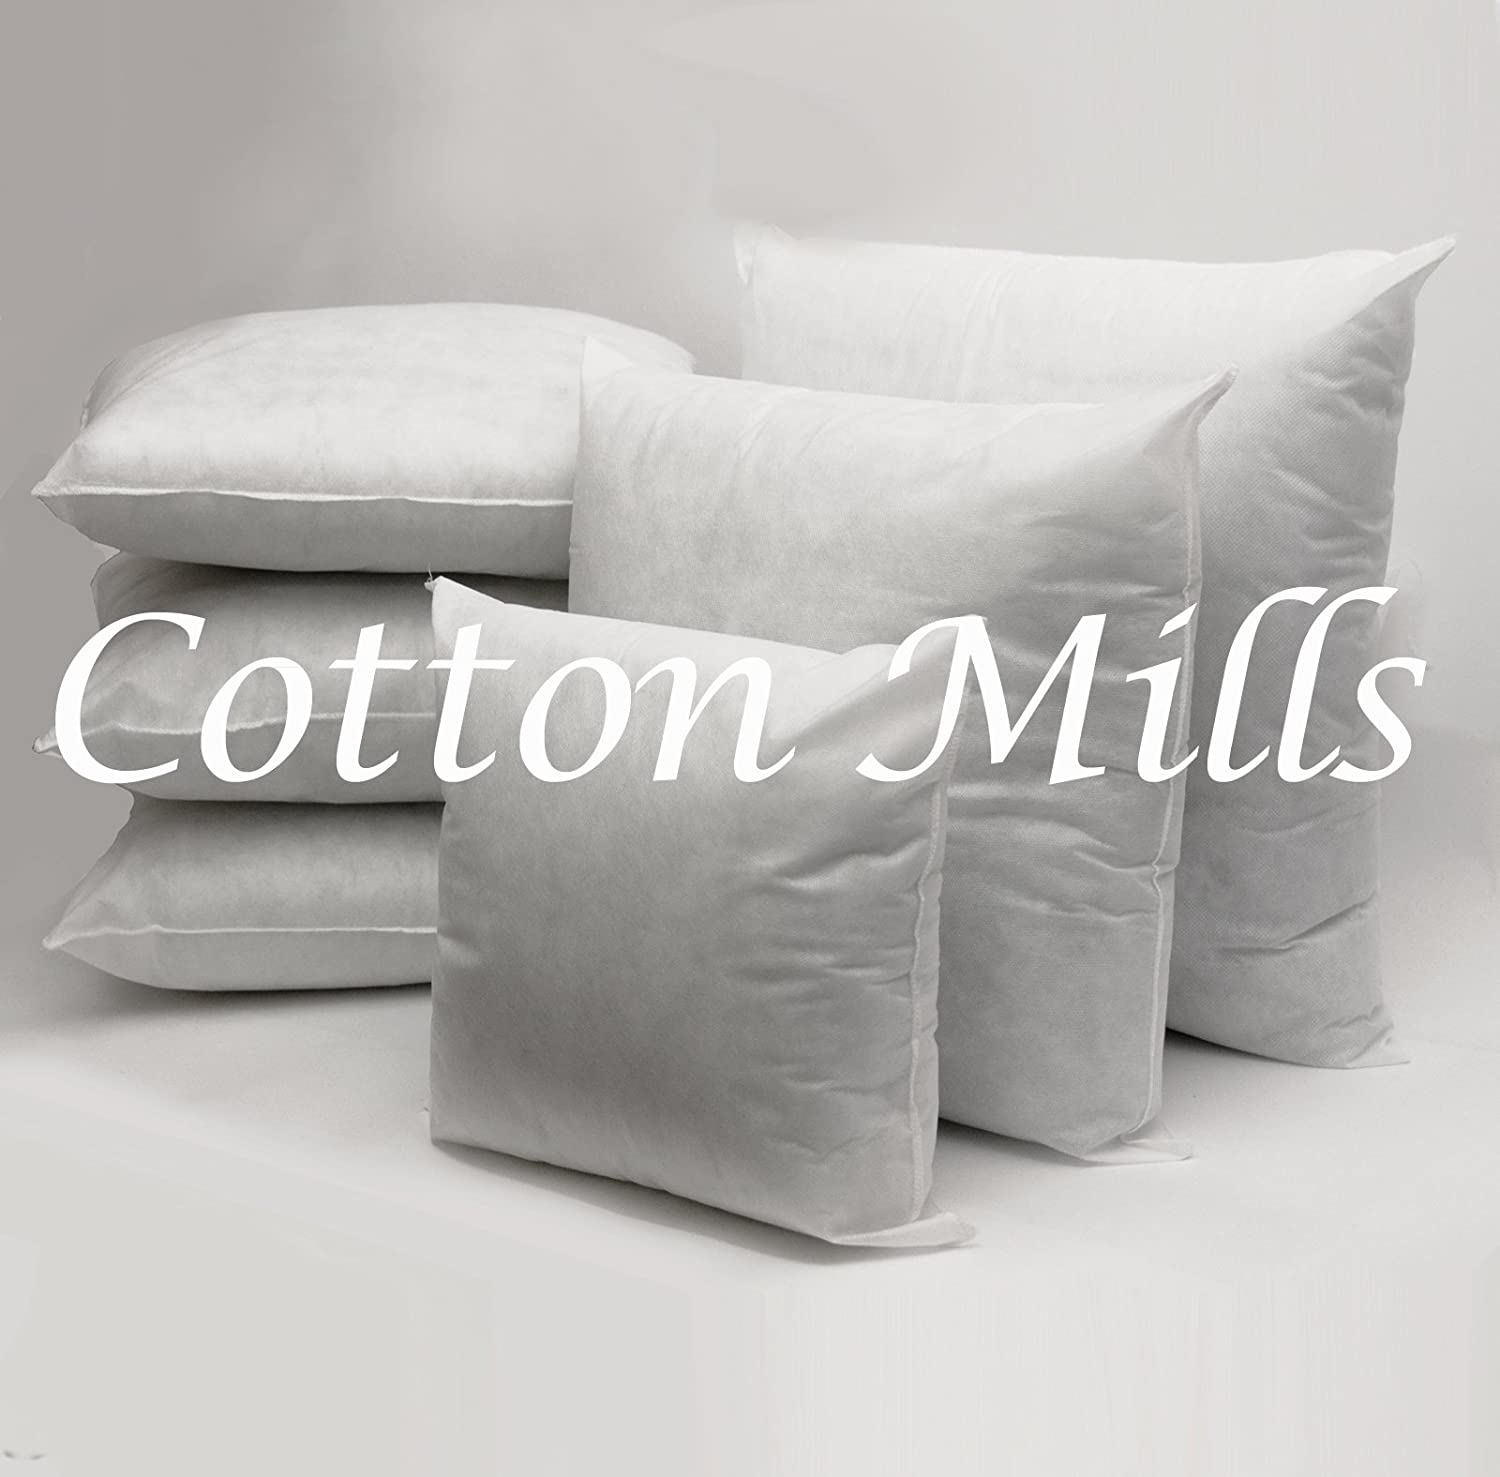 Cotton Mills Hollowfibre Filled Cushion Pad Insert/Filler (Oblong 12